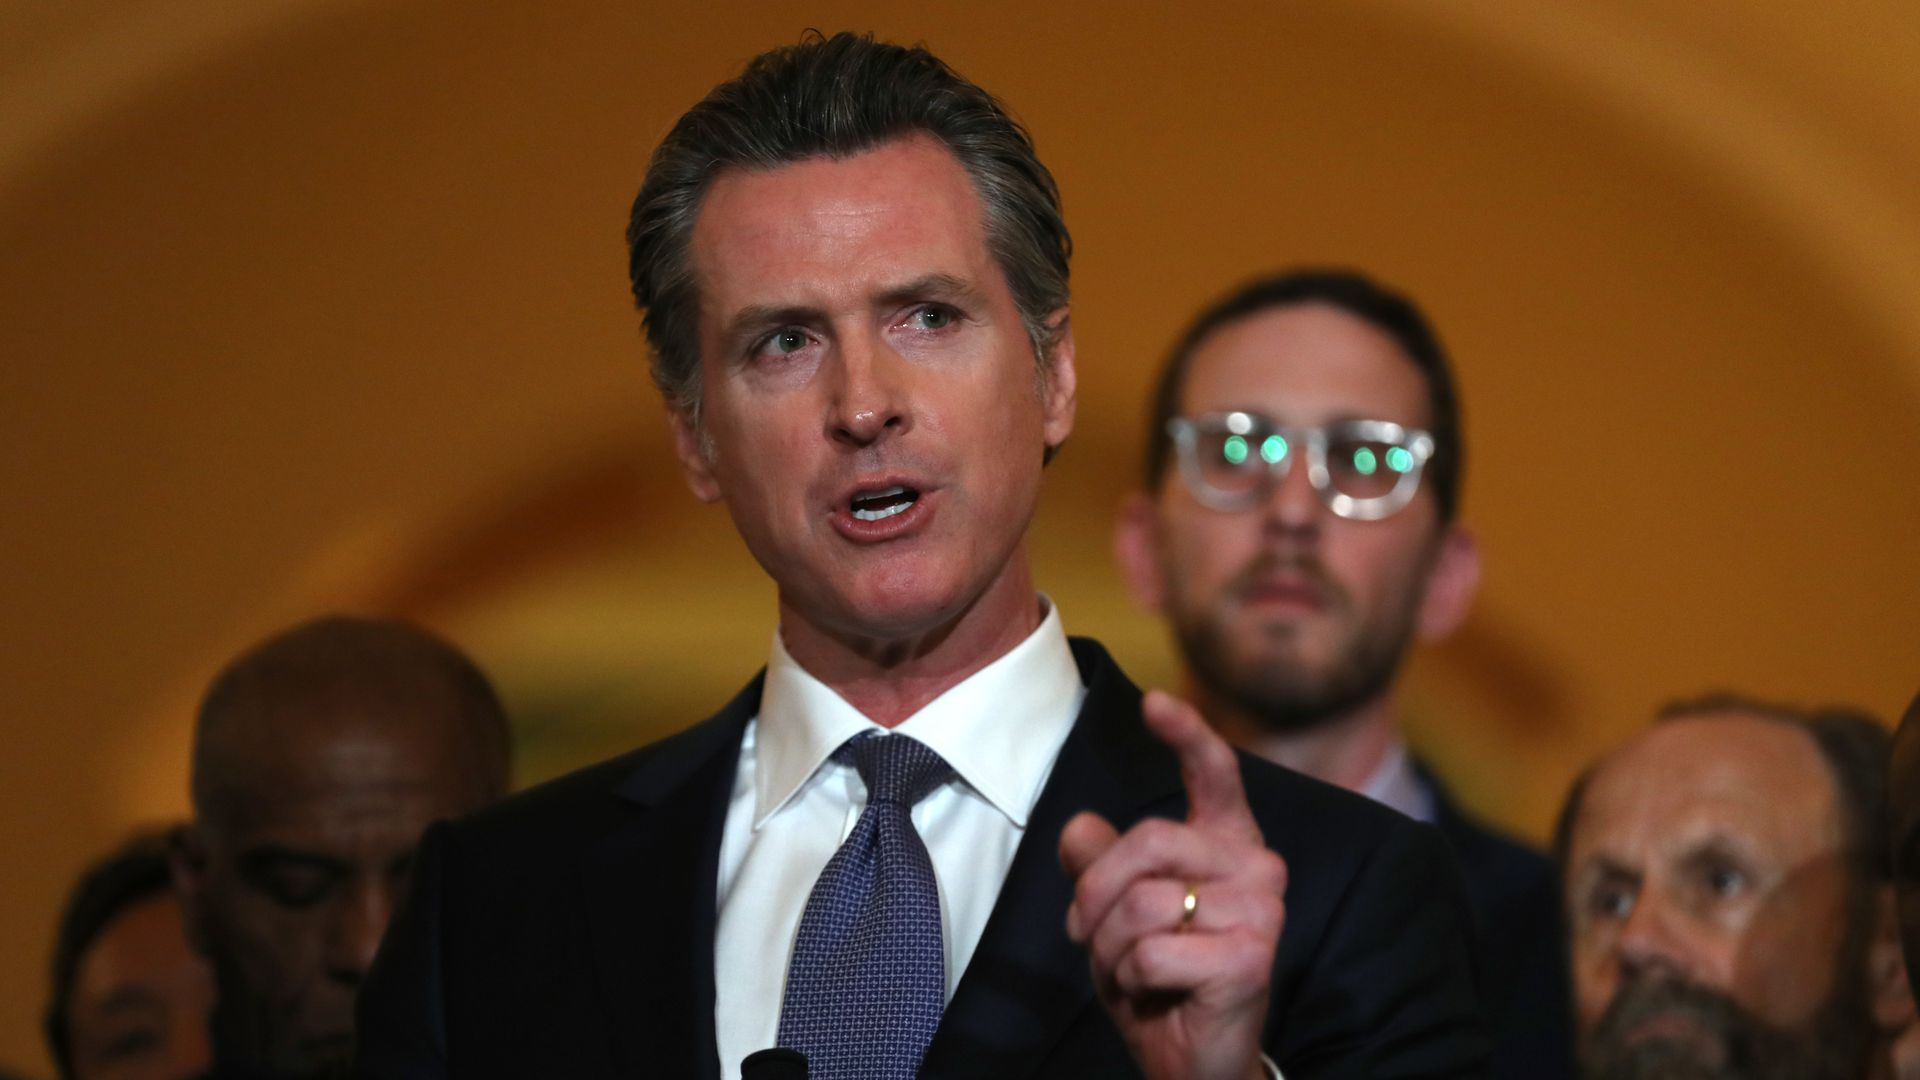 California Gov. Gavin Newsom during a speech.